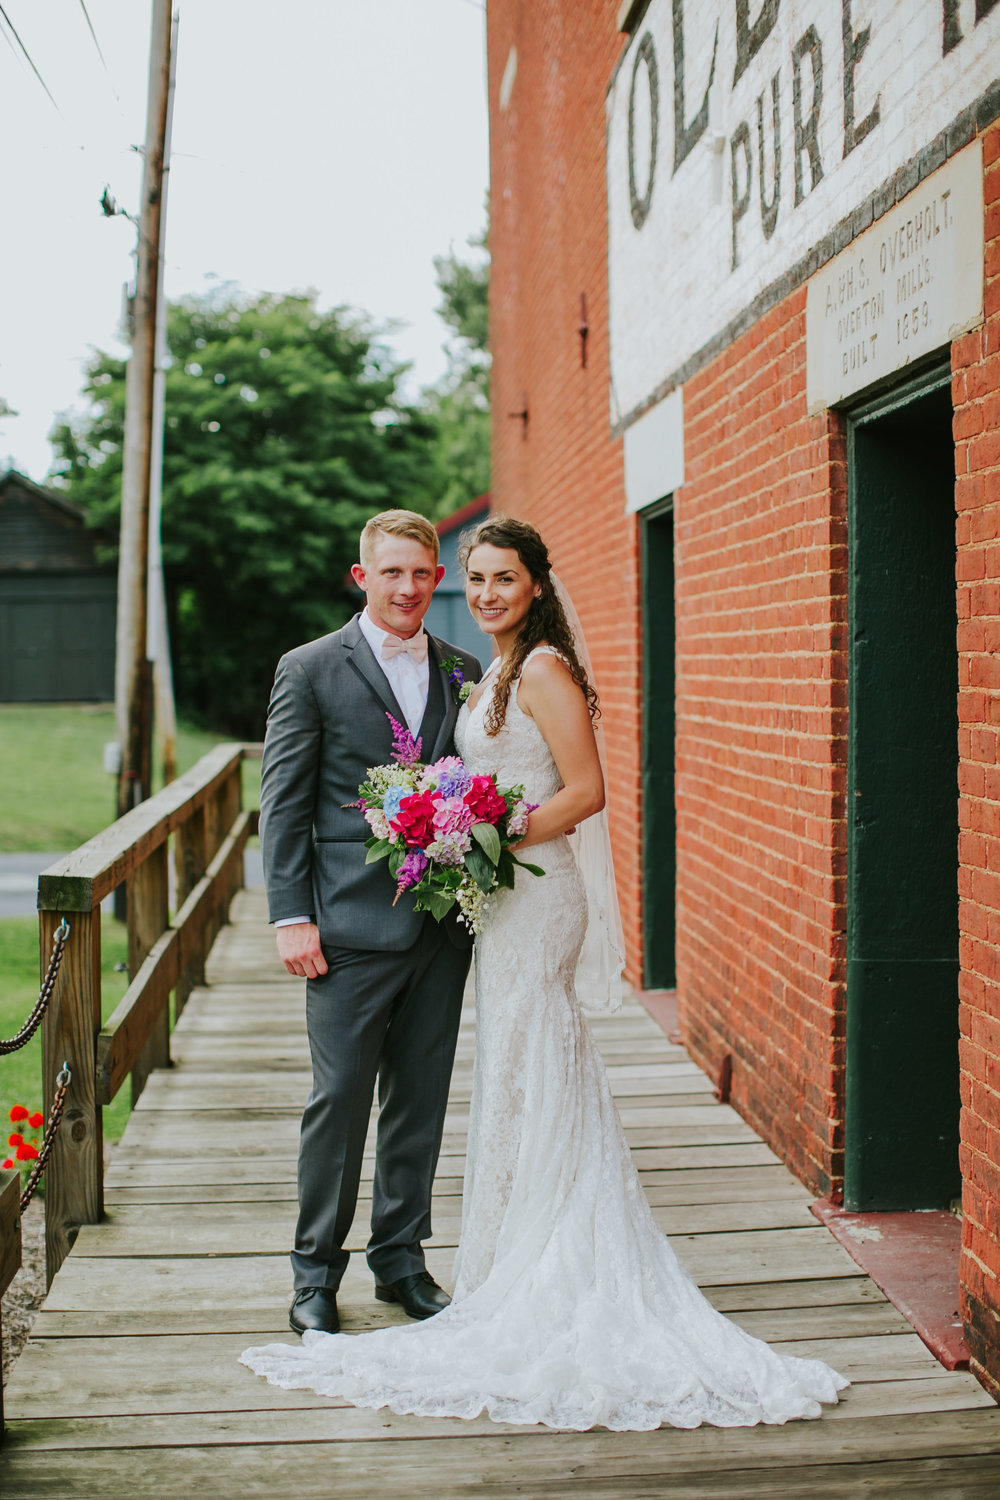 West Overton Wedding91.jpg